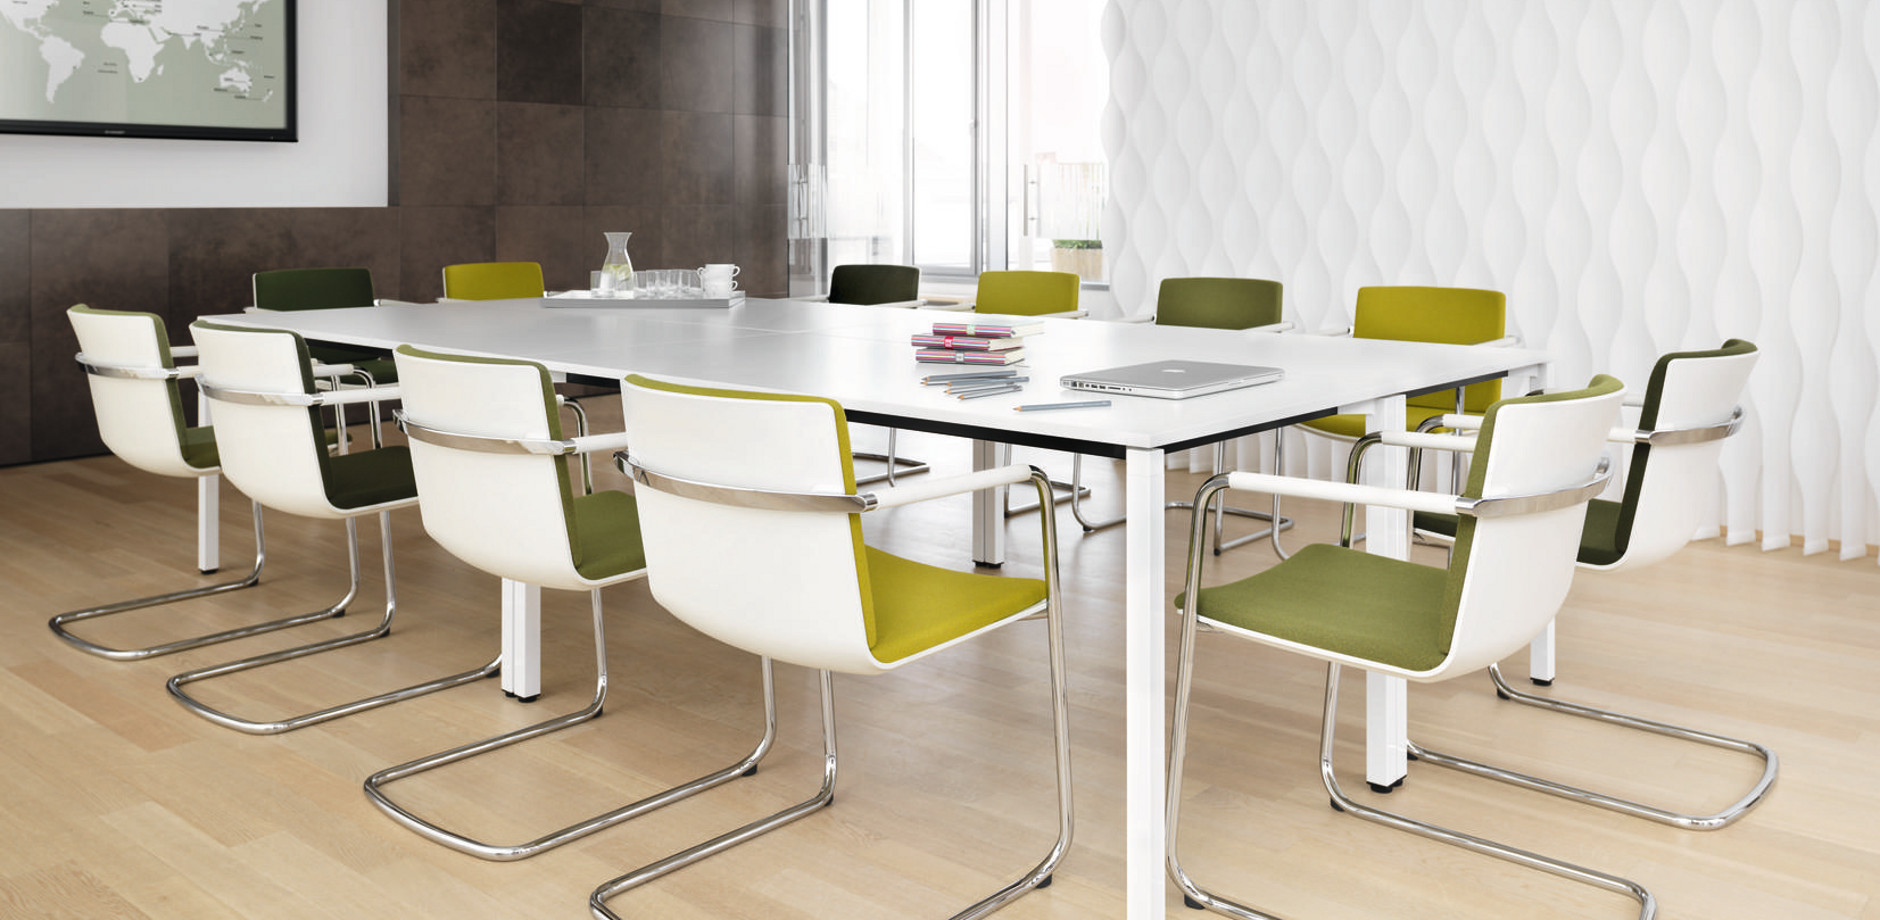 conference table Conversa and cantilever Neos covered with green fabric